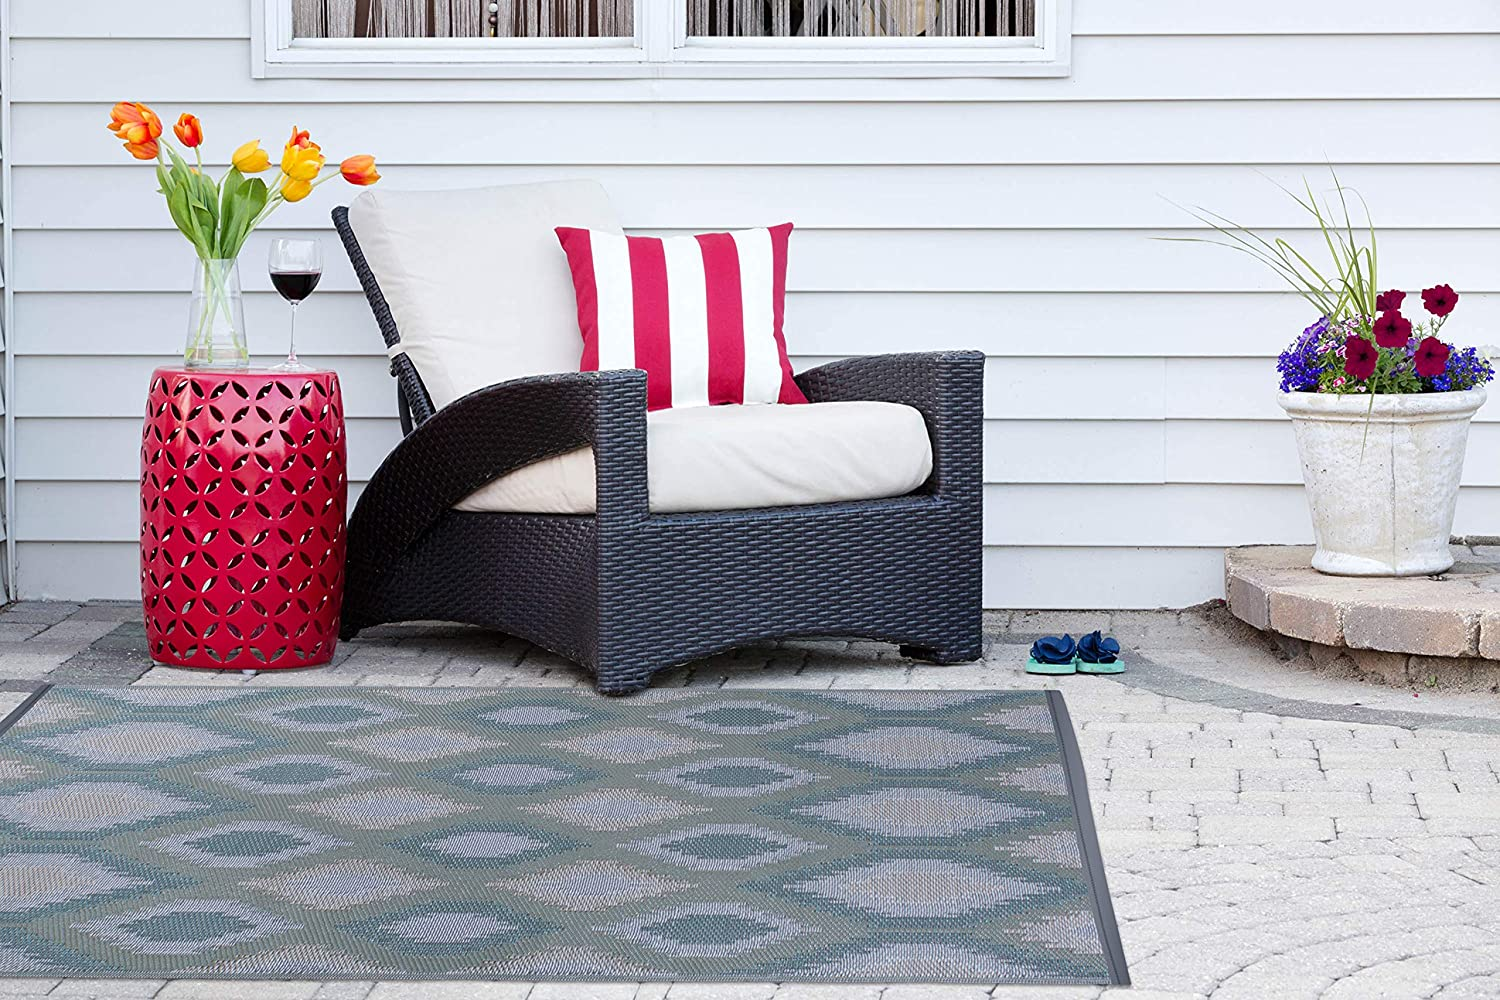 BBQ Blue Ikat 4 x 6 Picnic Beach Camping /& Fade Resistant Area Rug Deck DII Contemporary Indoor//Outdoor Lightweight Or Everyday Use Garage Reversible Use For Patio